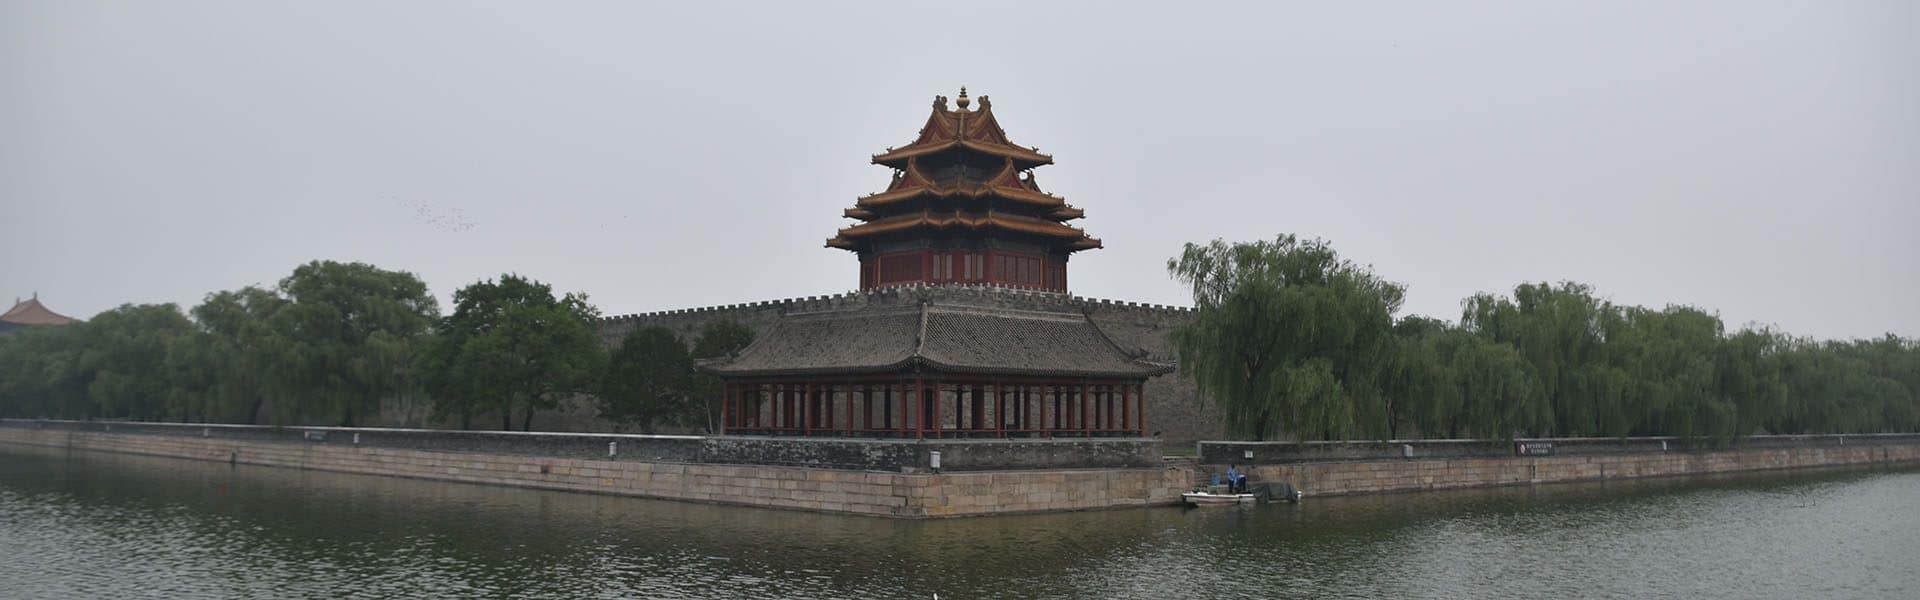 A picture of the outside of the forbidden city including the moat and walls